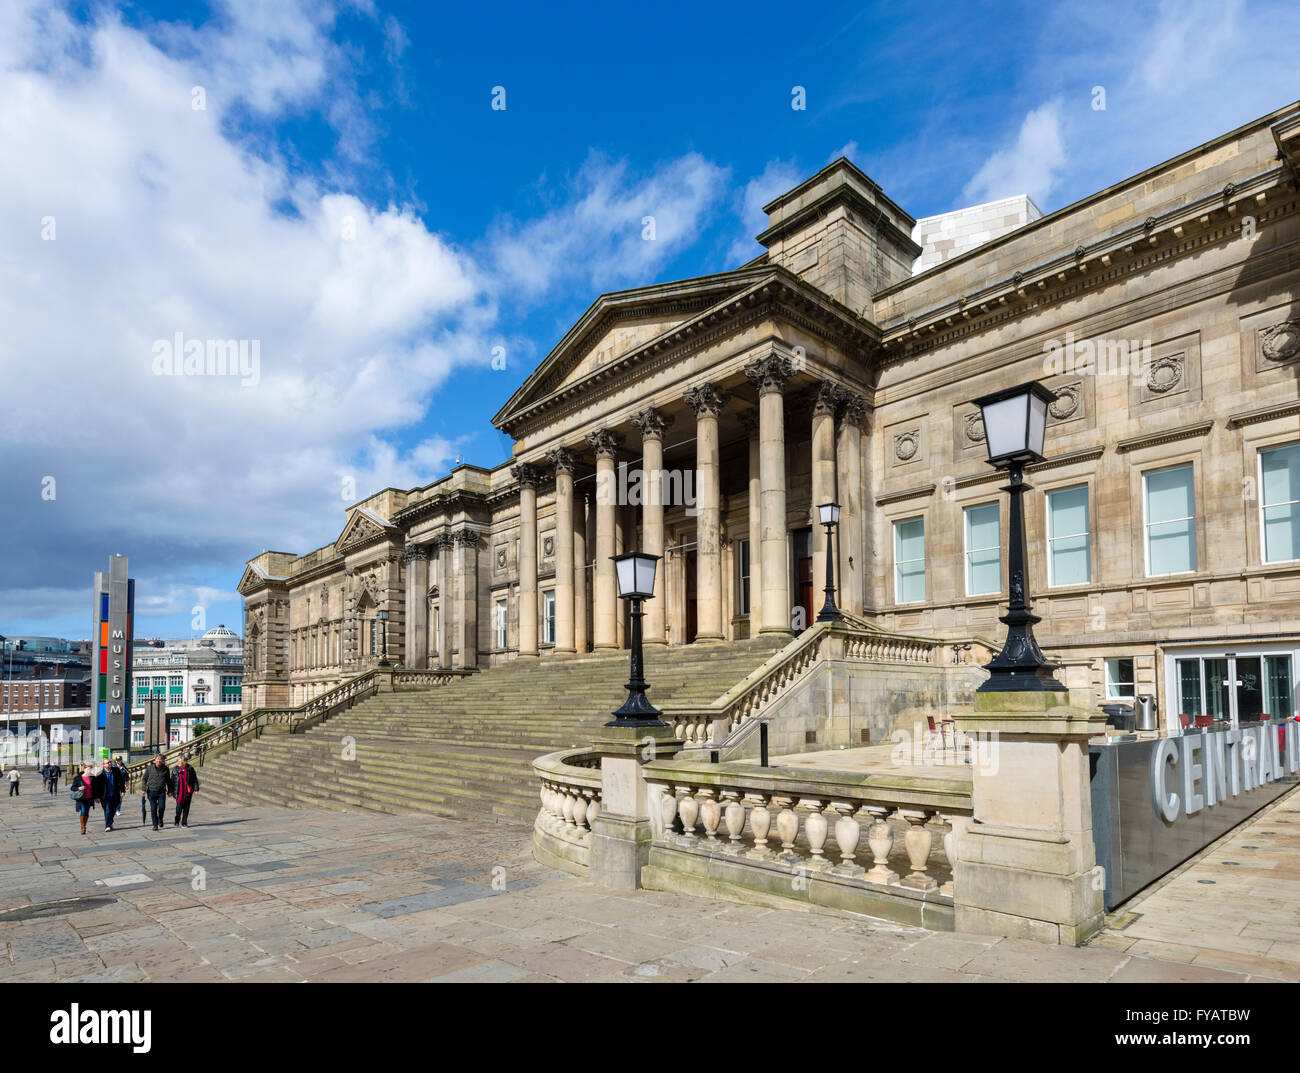 The Central Library and World Museum, William Brown Street, Liverpool, England, UK - Stock Image